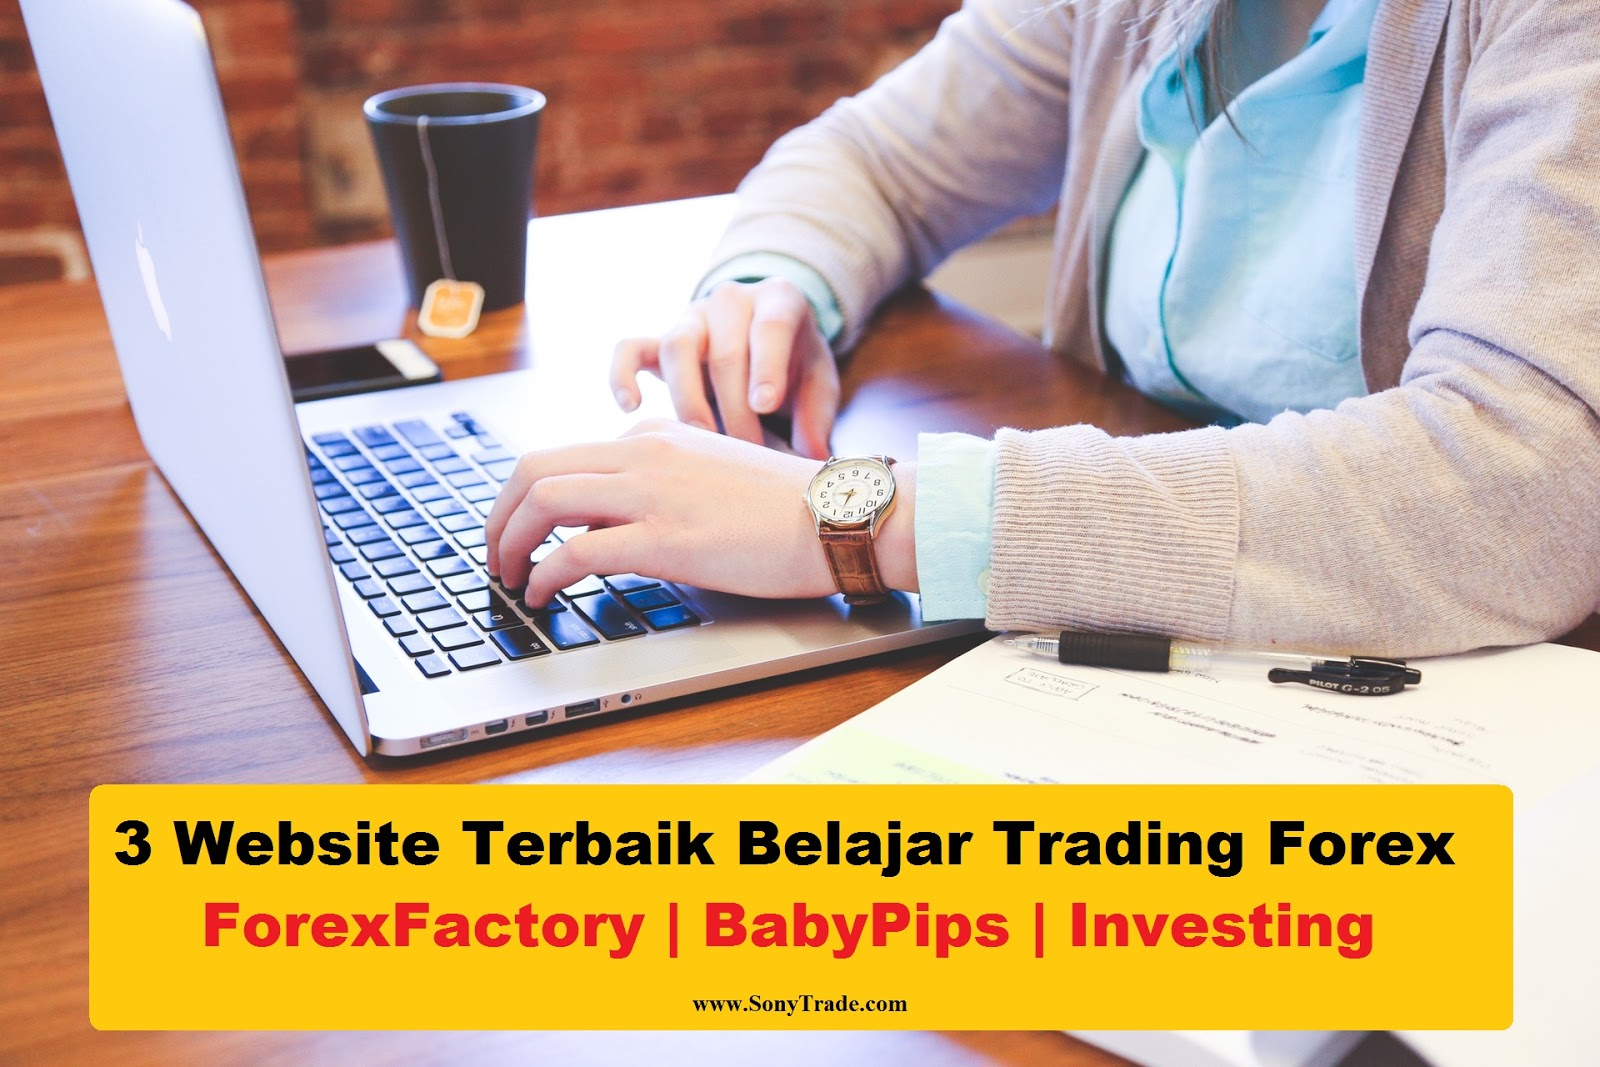 Basket trading forex factory site www.forexfactory.com